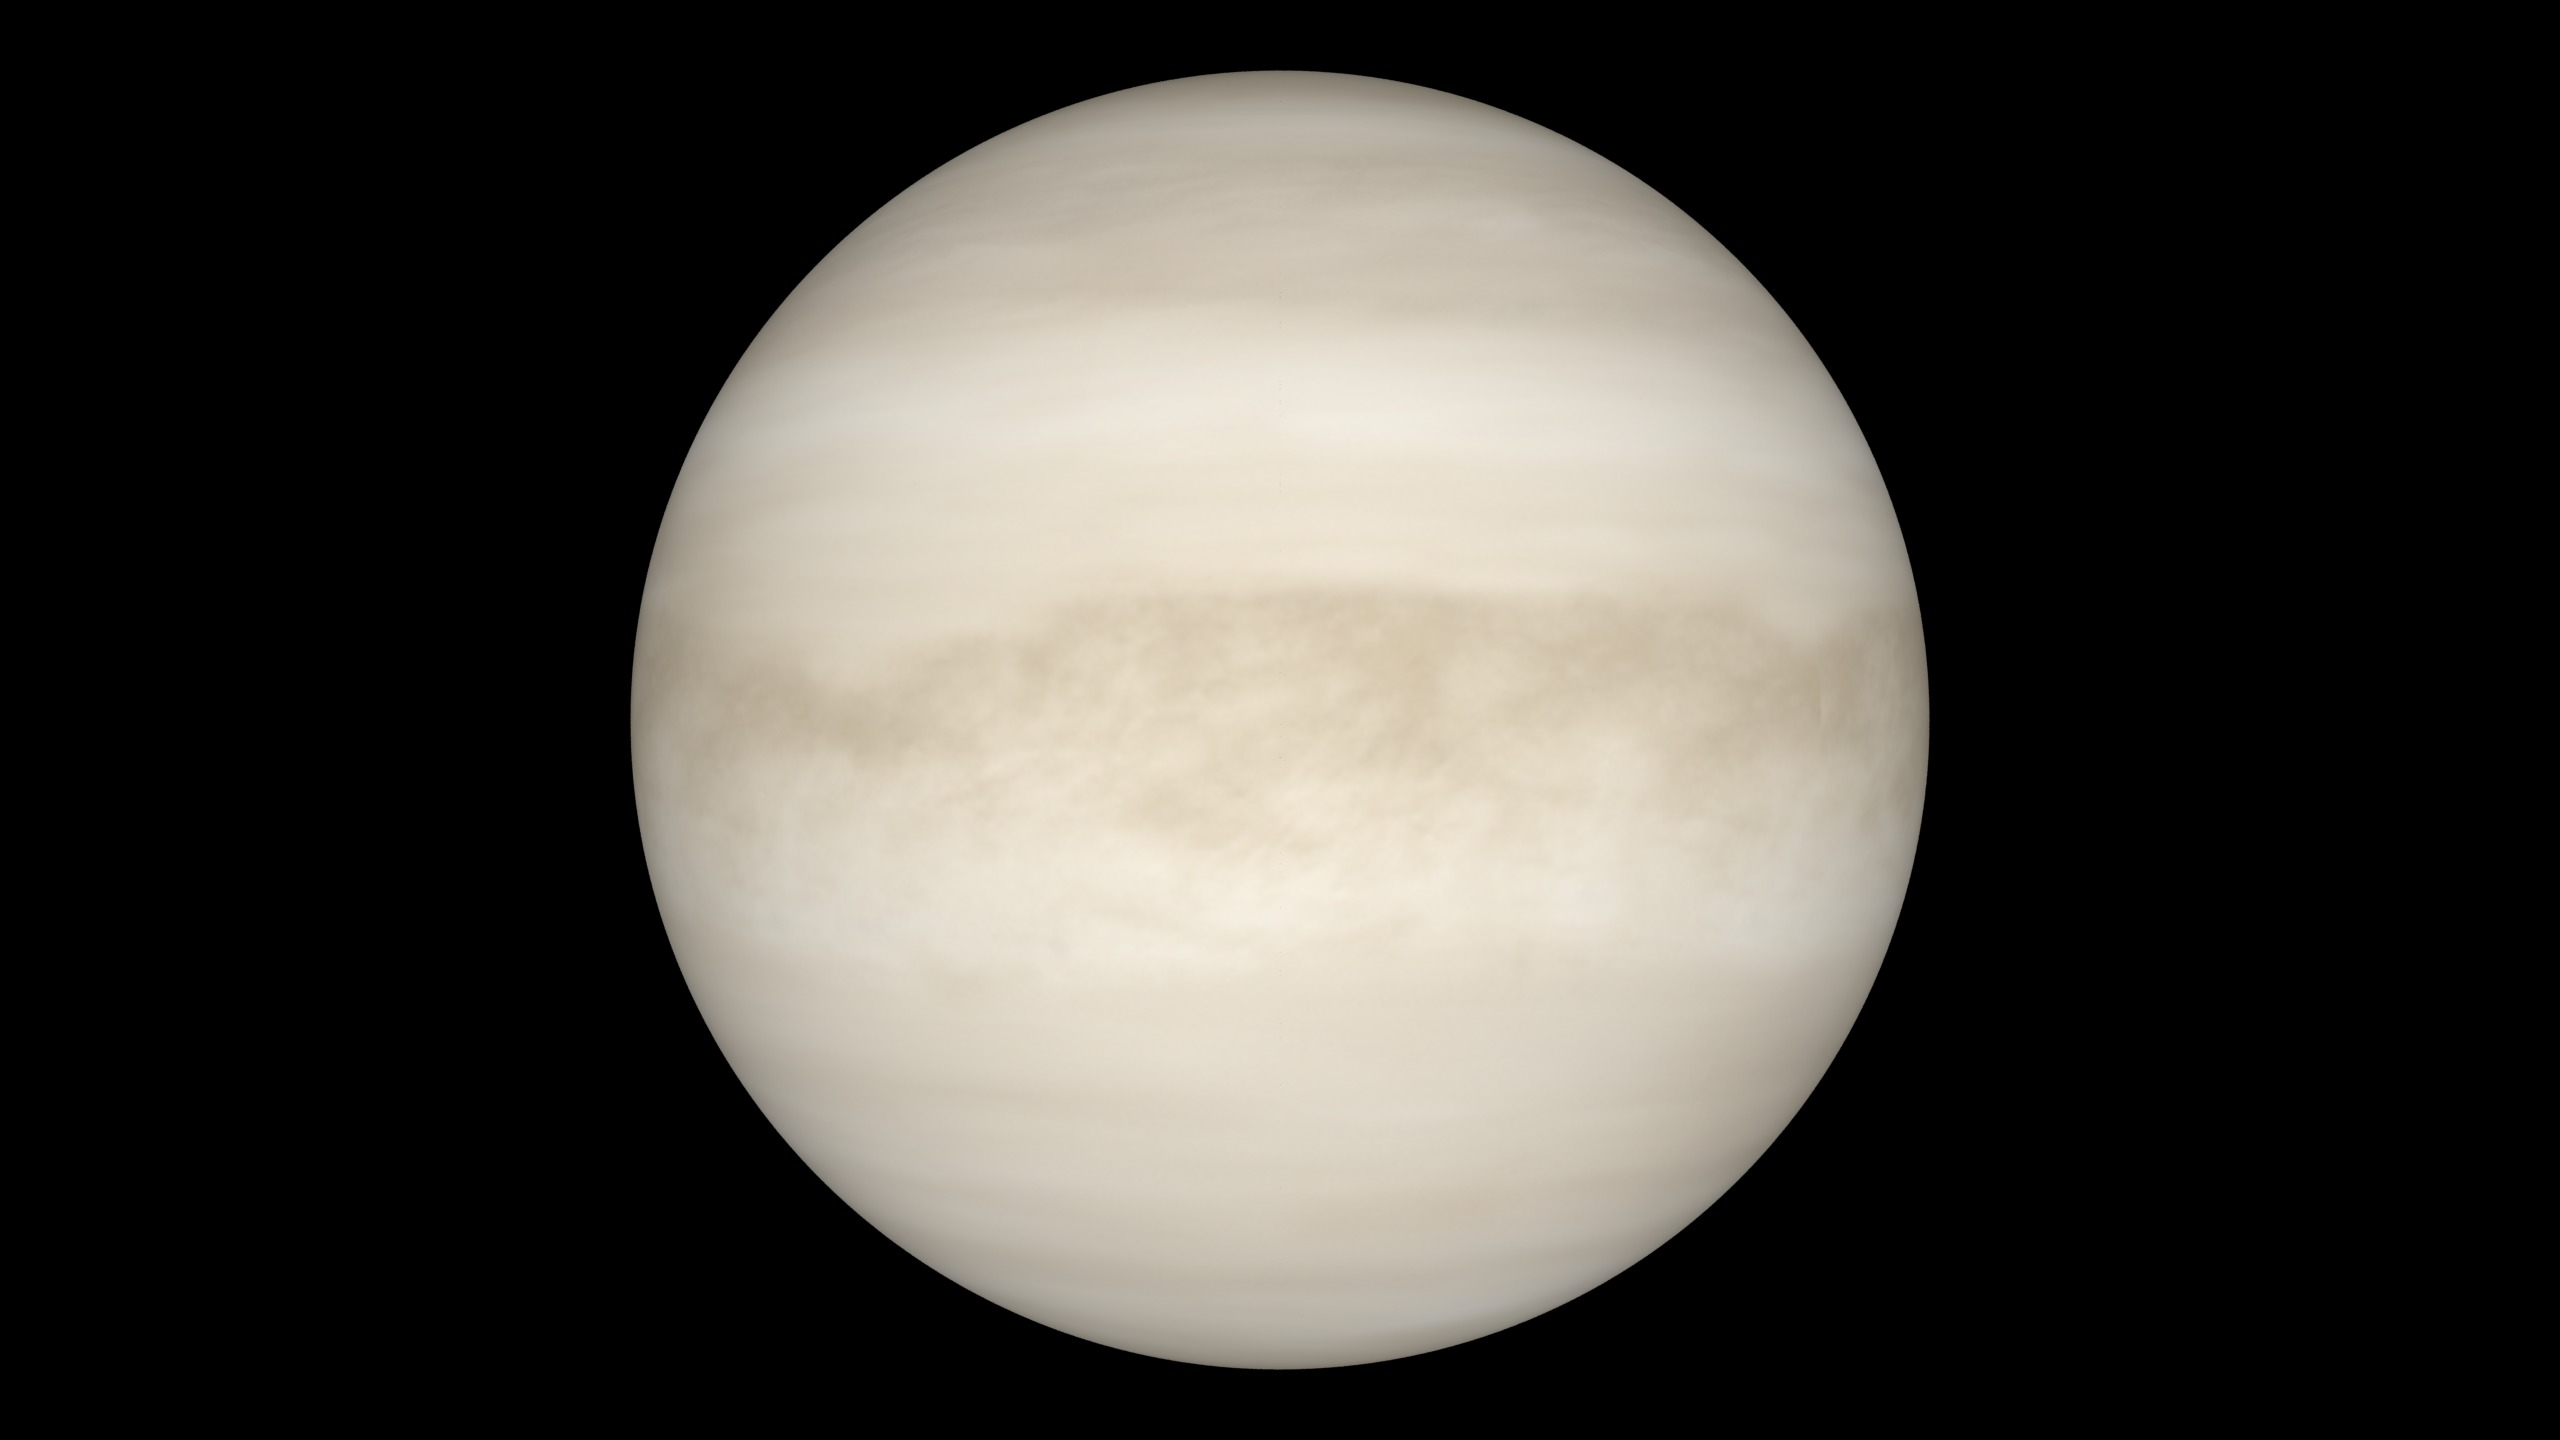 venus_atmosphere.jpg